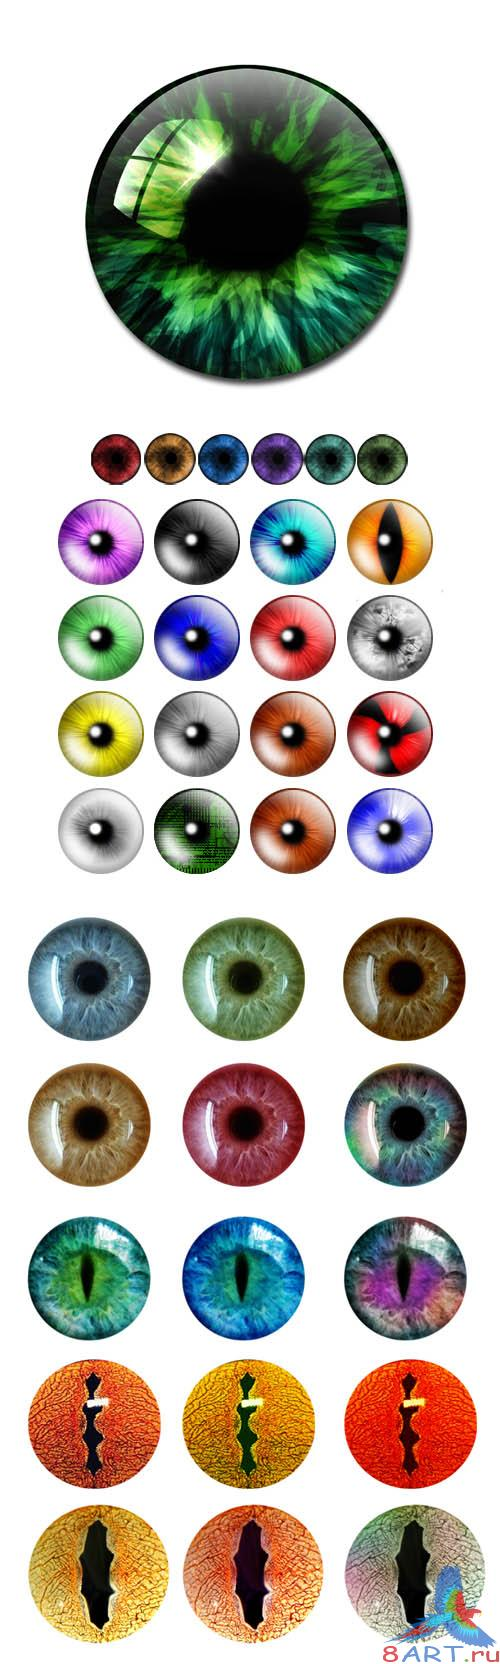 PSD Cliparts - Eyes